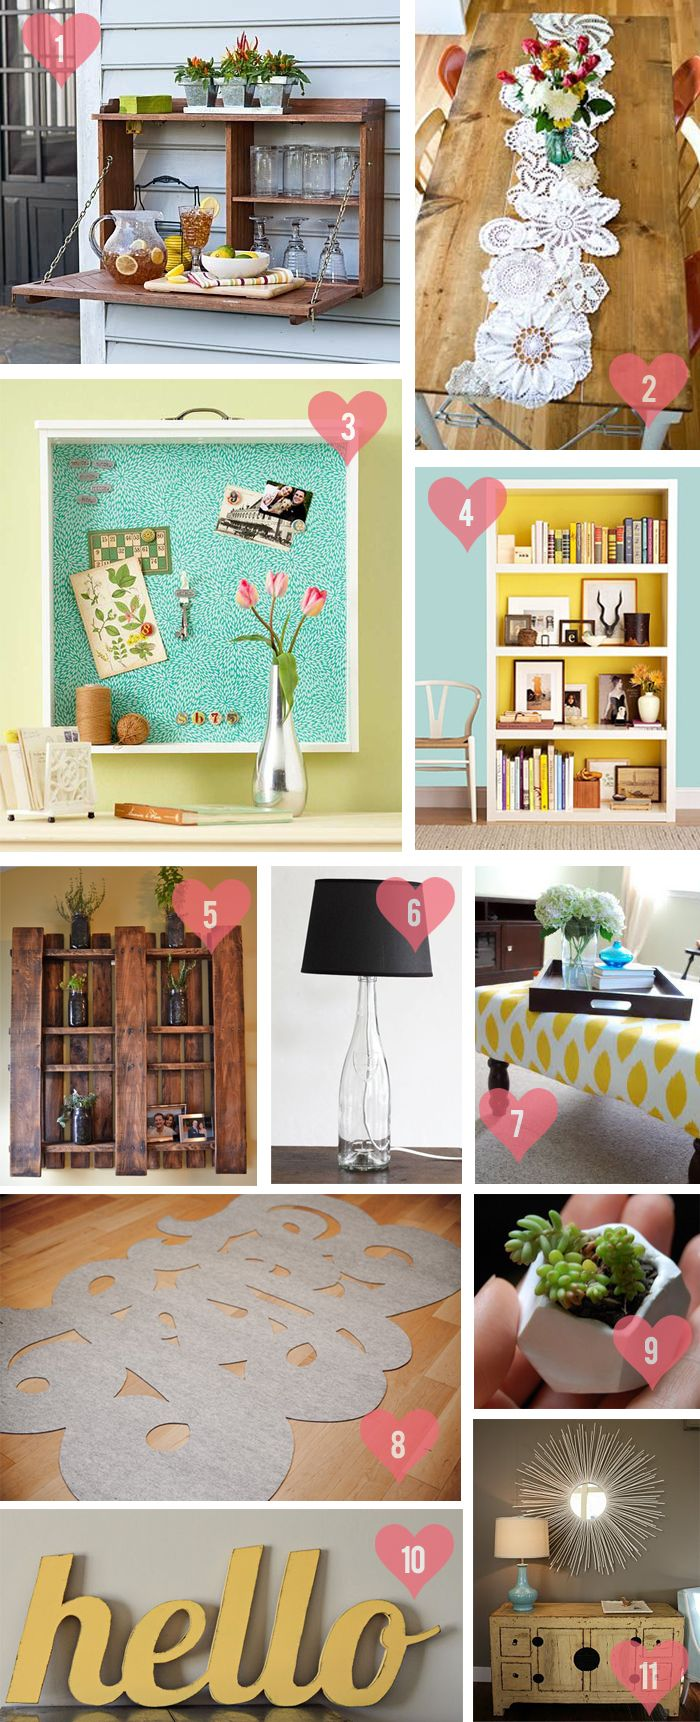 Living Room Pinterest Home Crafts party crafts pinterest craft and housewife on pinterest